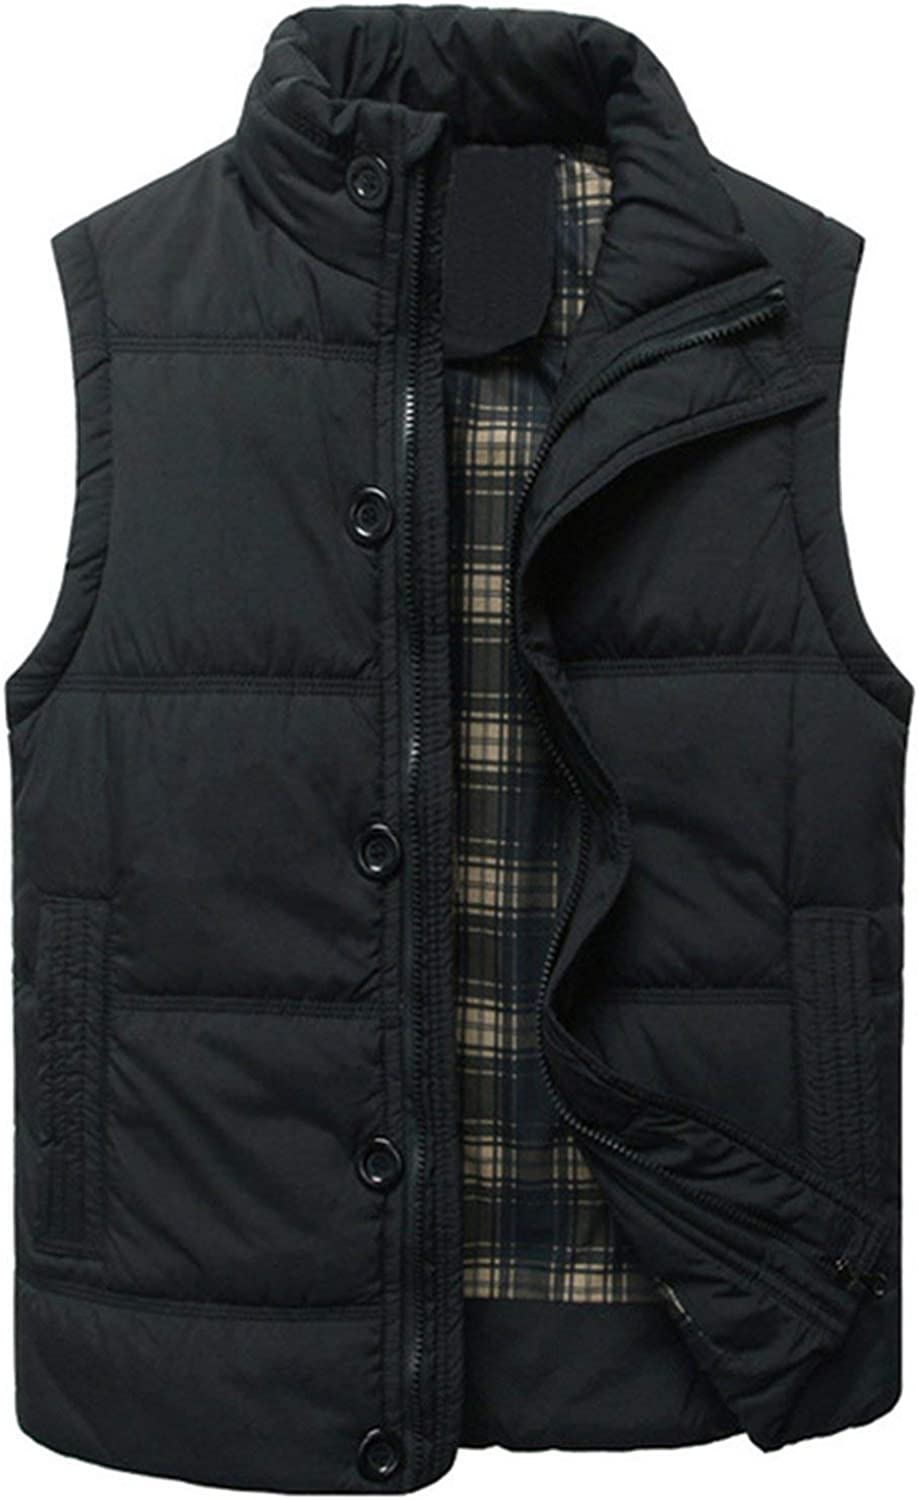 xczwx Thick Warm Winter Vest for Cotton Men Autumn Male Casual Hot Solid Button Sleeveless Jacket Classic Mens Waistcoat